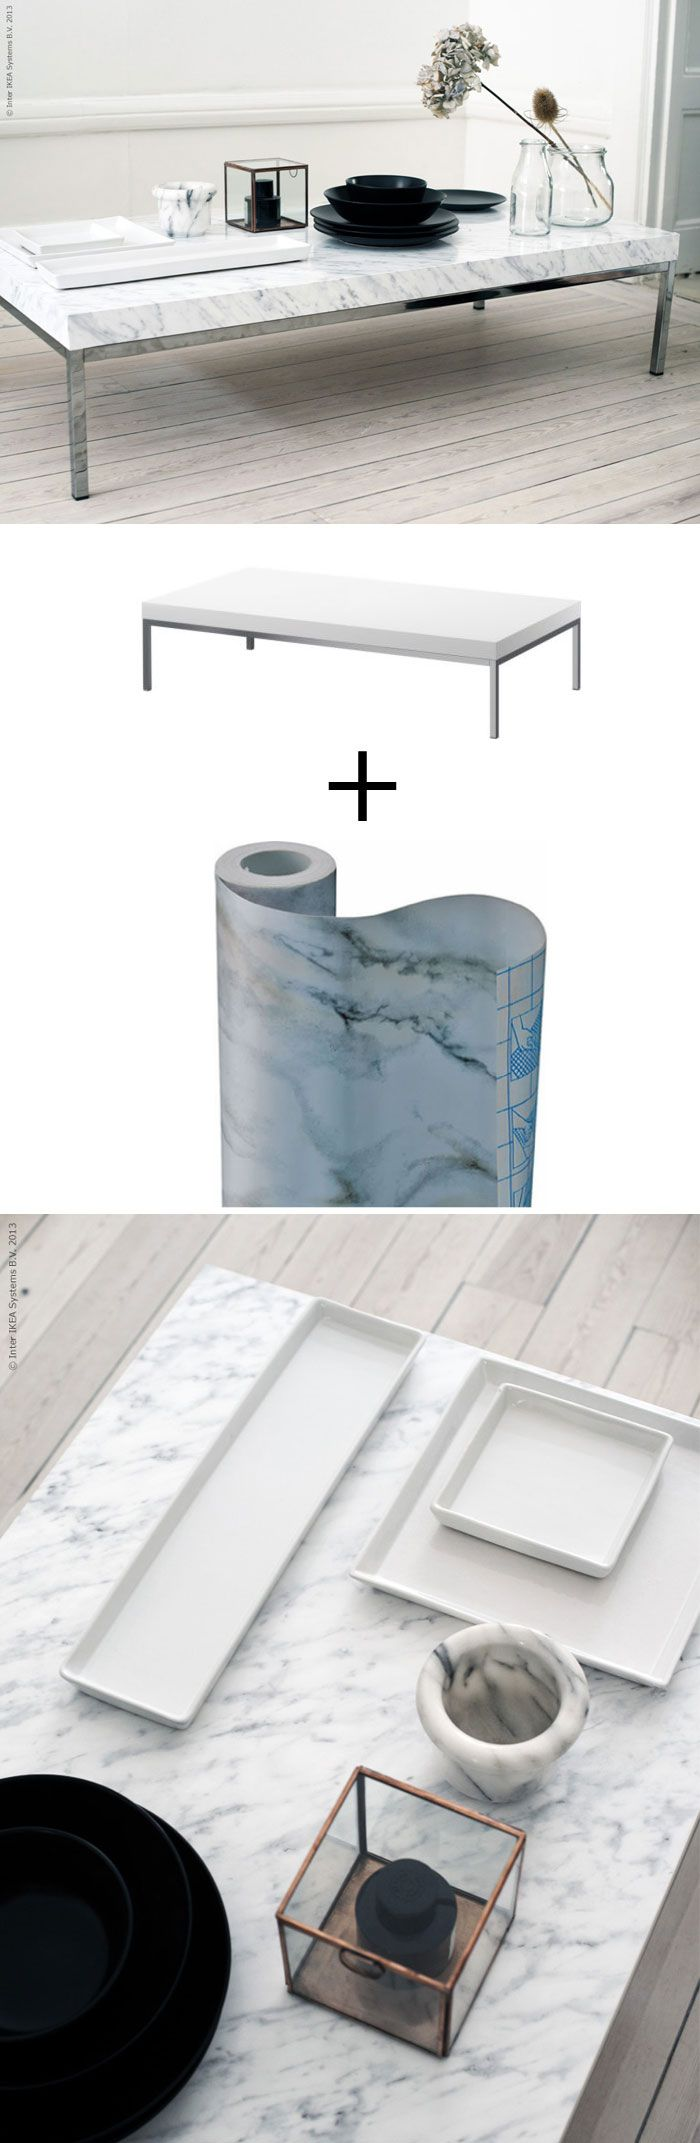 DIY - Marble Coffee Table - Using the IKEA KLUBBO Coffee Table + Marble Contact Paper - A Tutorial